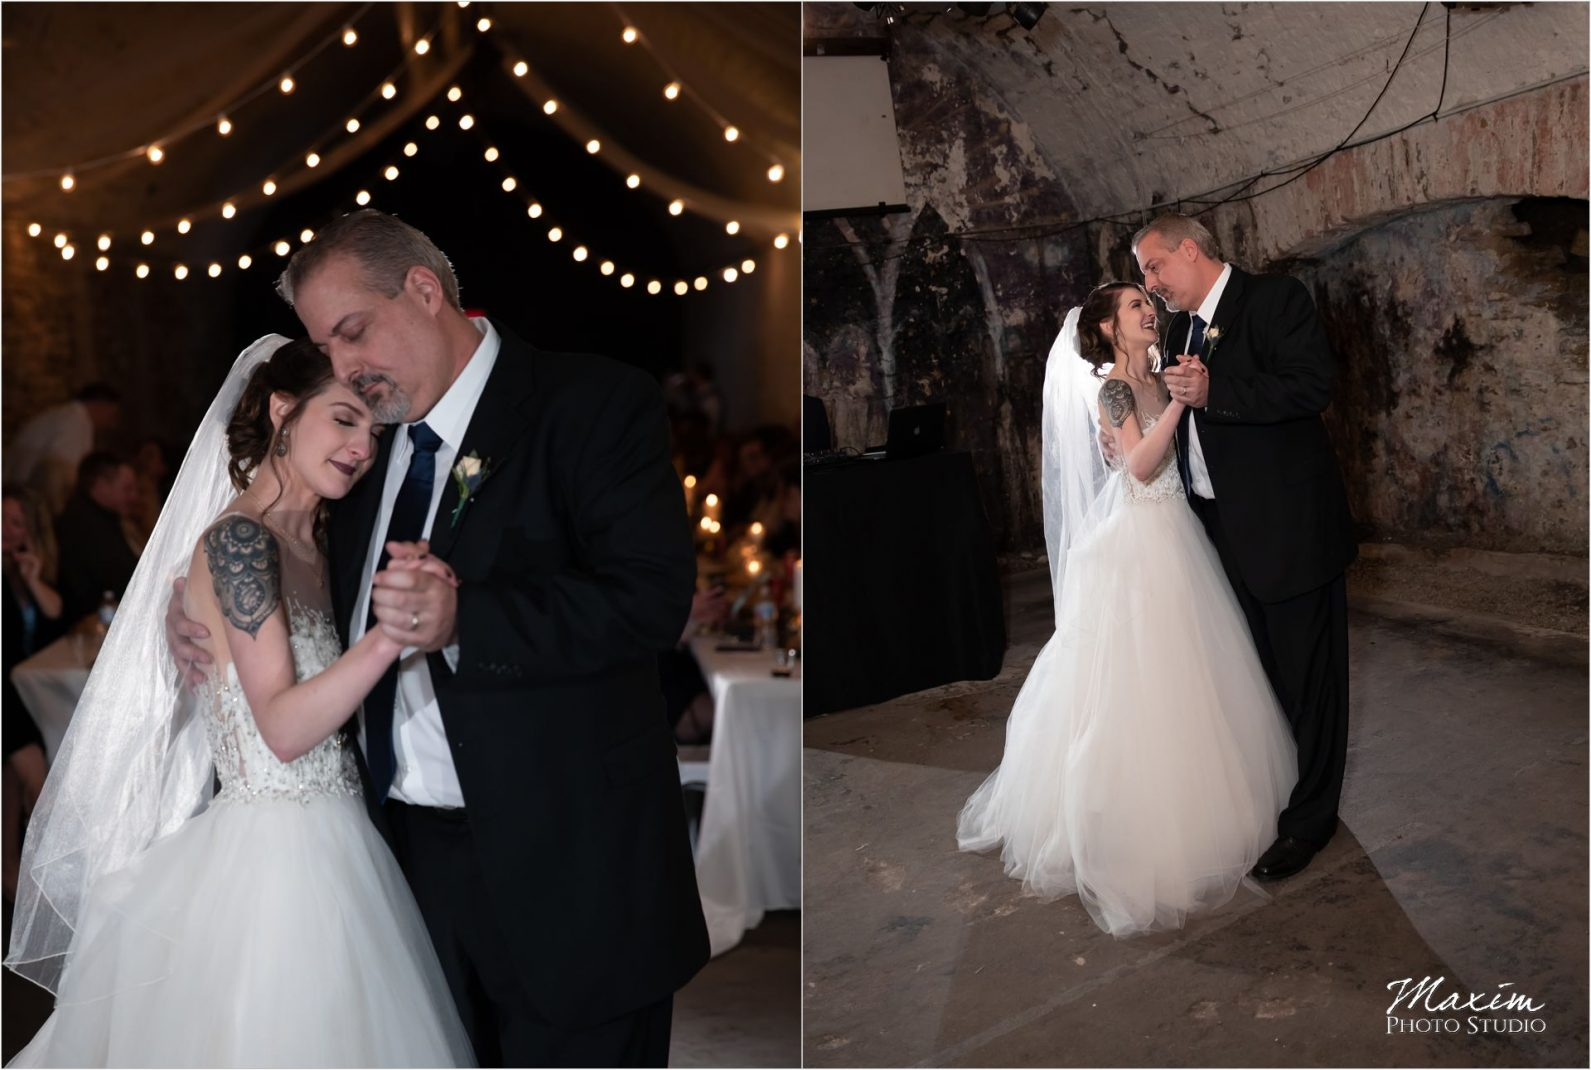 The Mockbee Cincinnati Wedding Reception Father Daughter Dance